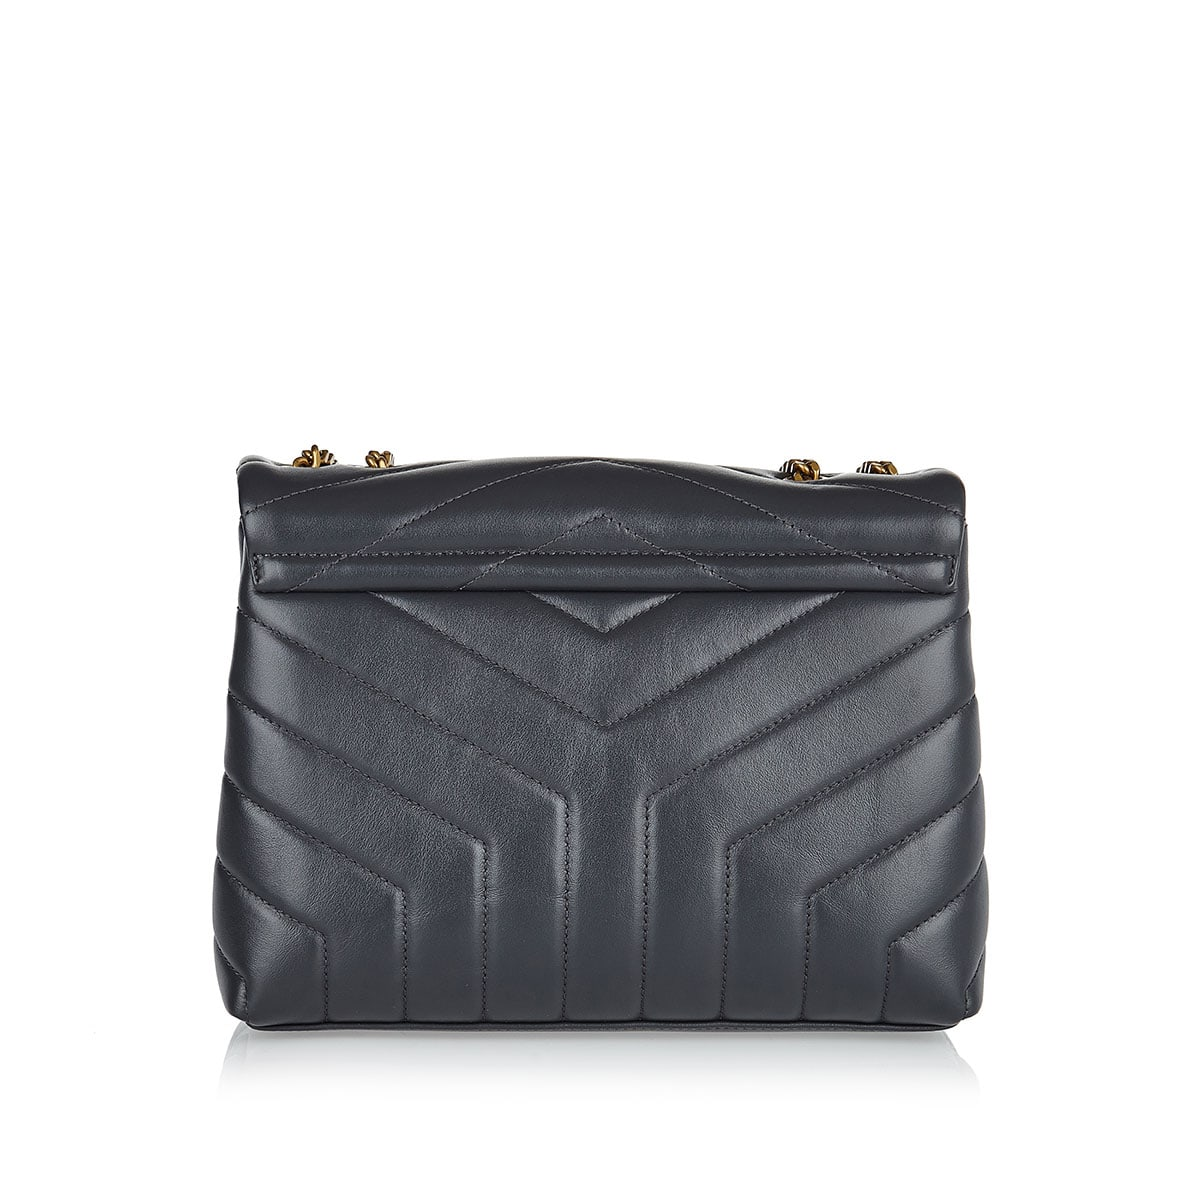 Small Loulou matelassé leather bag